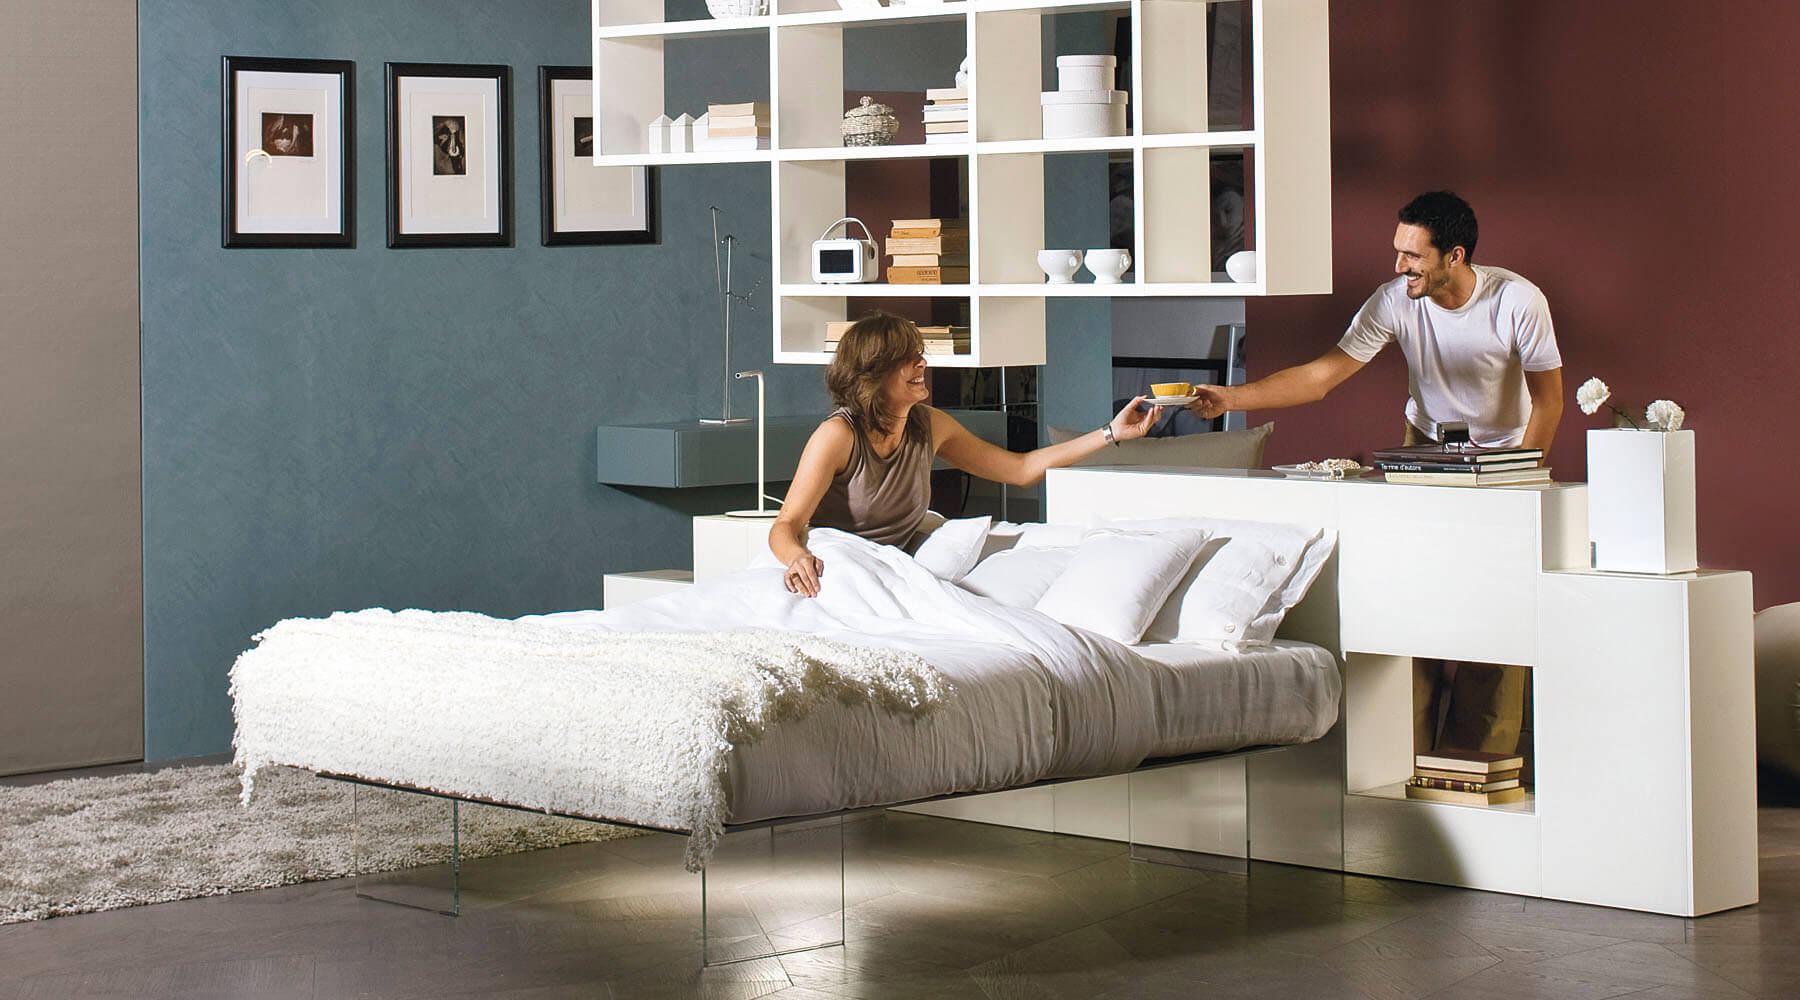 Letto-air-e-weightless.jpg (1800×1000) | COLOR | Material ...